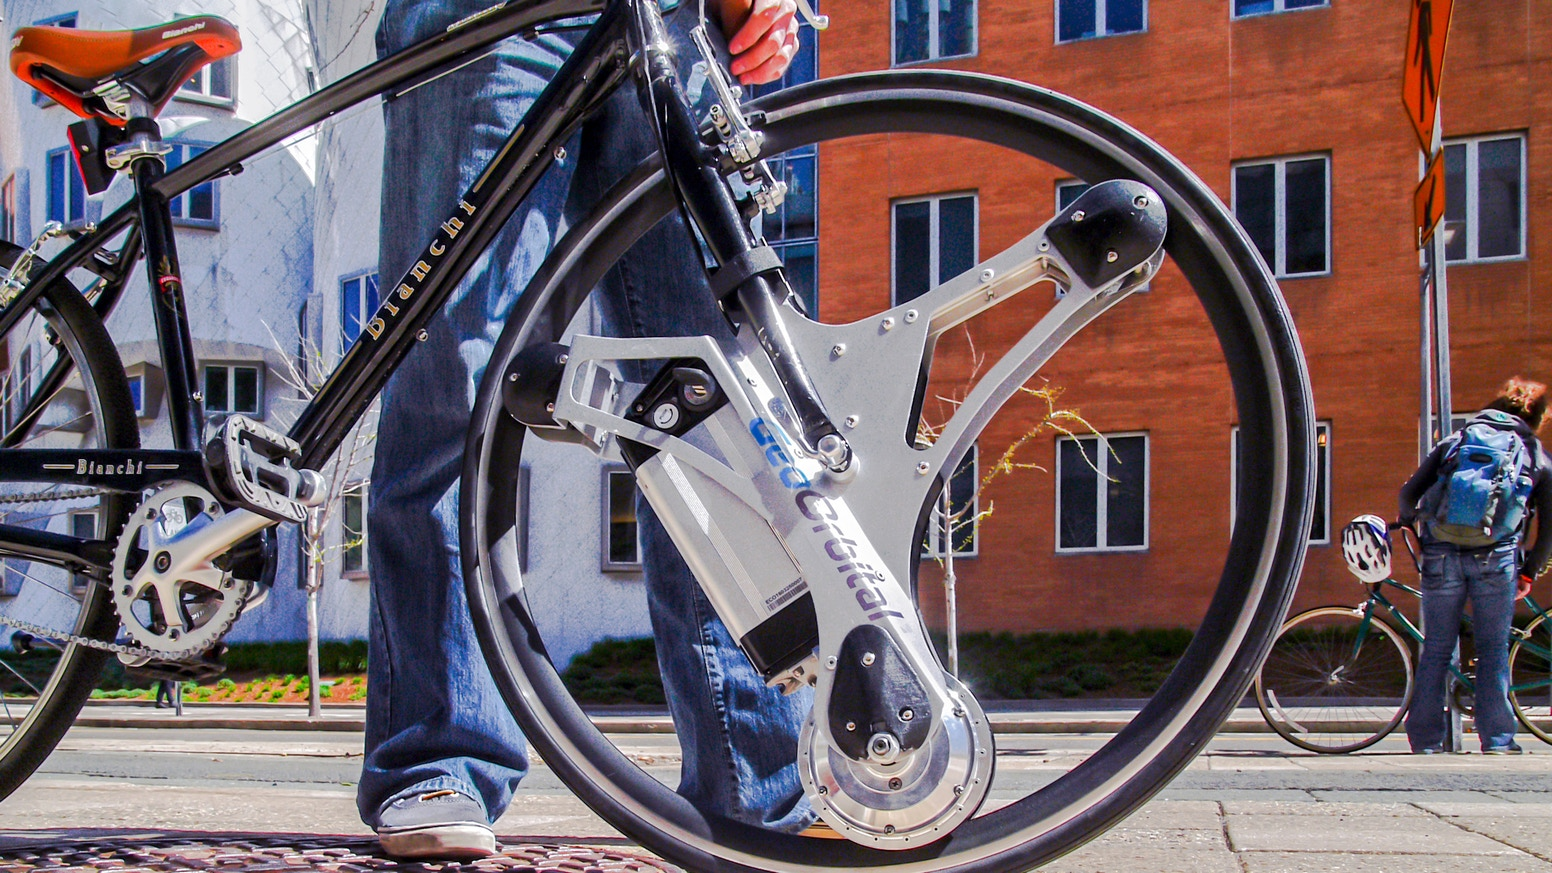 Use your bike to go up to 20 miles per hour for up to 20+ miles - quick installation, universal compatibility.